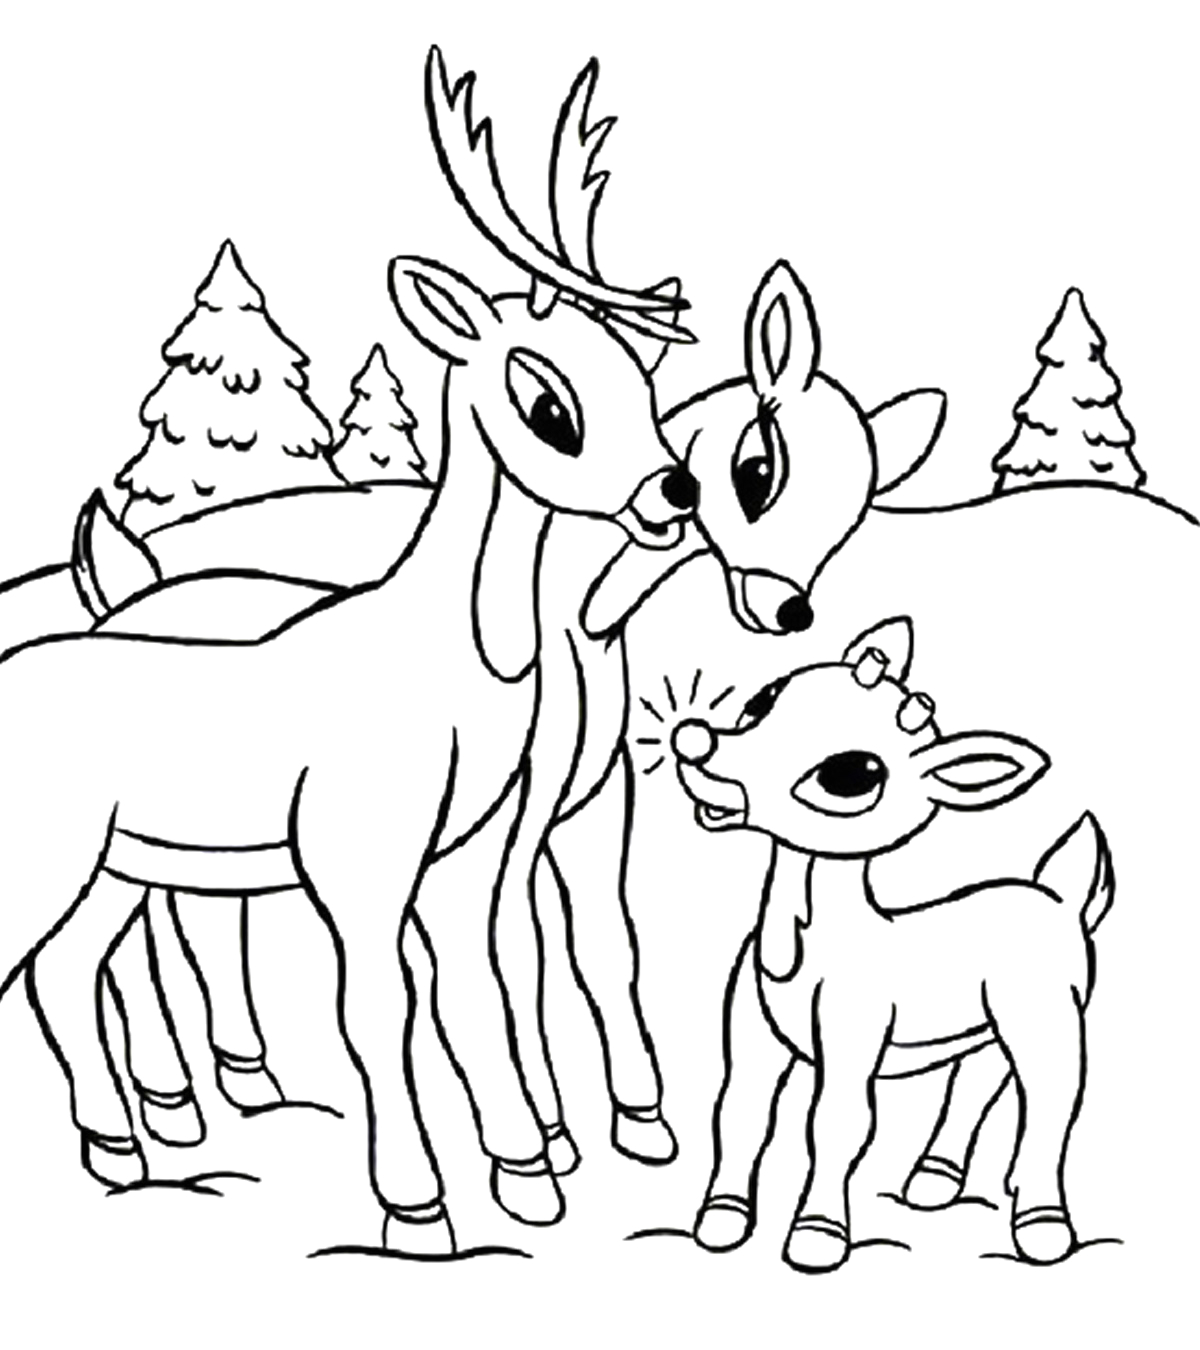 Free Rudolph the Red Nosed Reindeer Coloring Pages Holiday Coloring Pages Momjunction